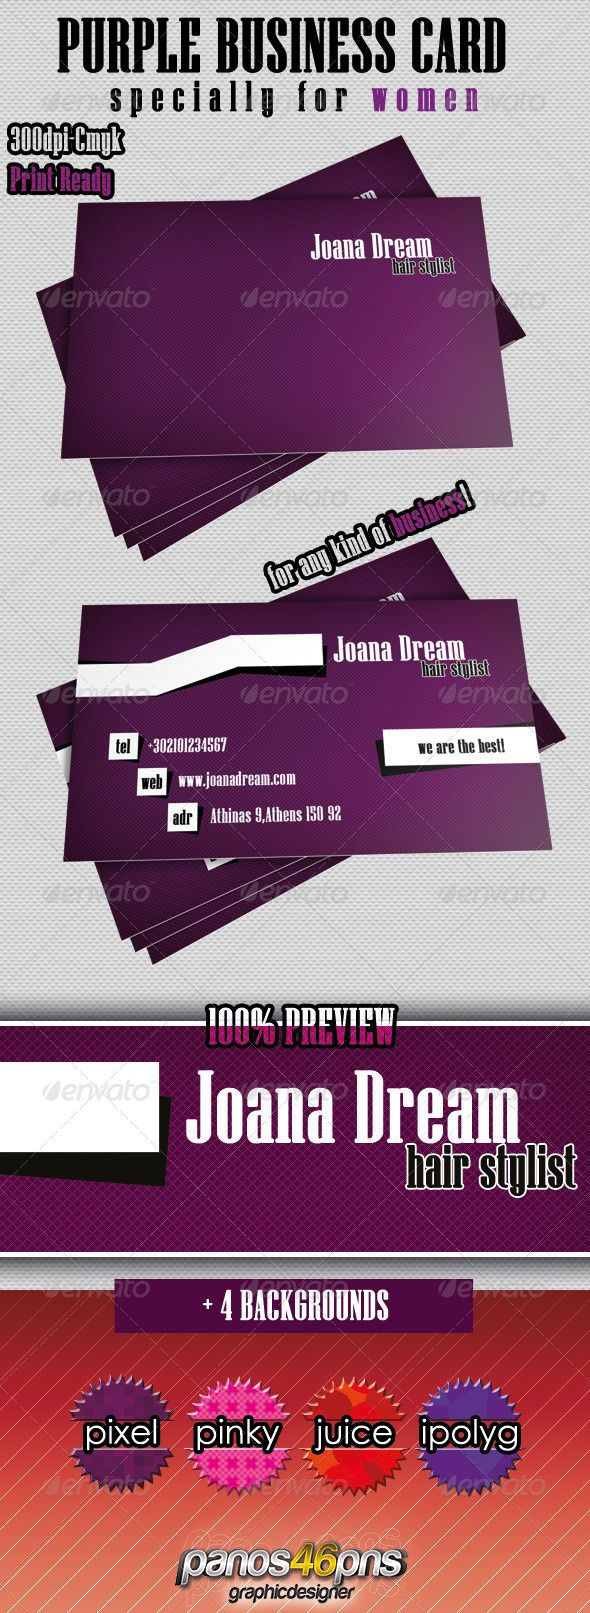 32 best business cards images on pinterest stationery cards and 32 best business cards images on pinterest stationery cards and events magicingreecefo Image collections